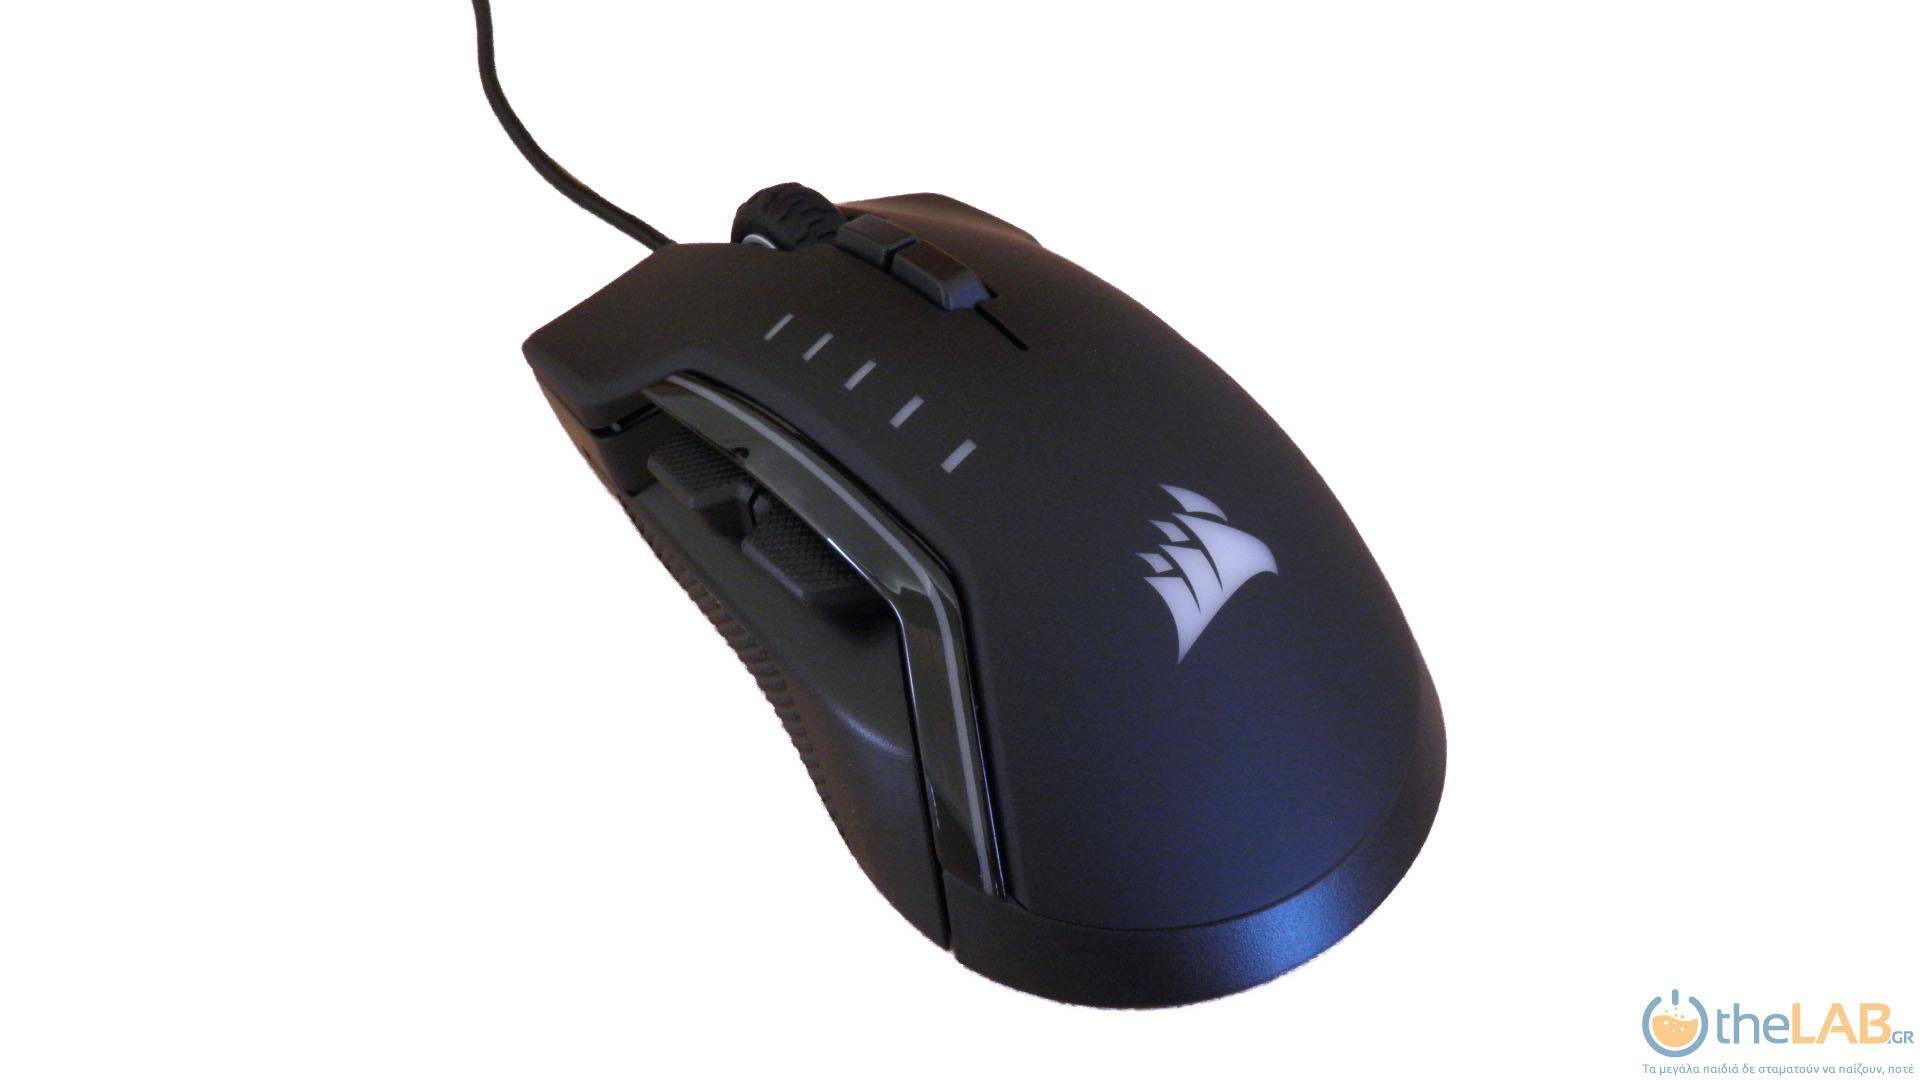 corsair-glaive-rgb-pro-gaming-mouse-review-mouse-thumb-grip-1